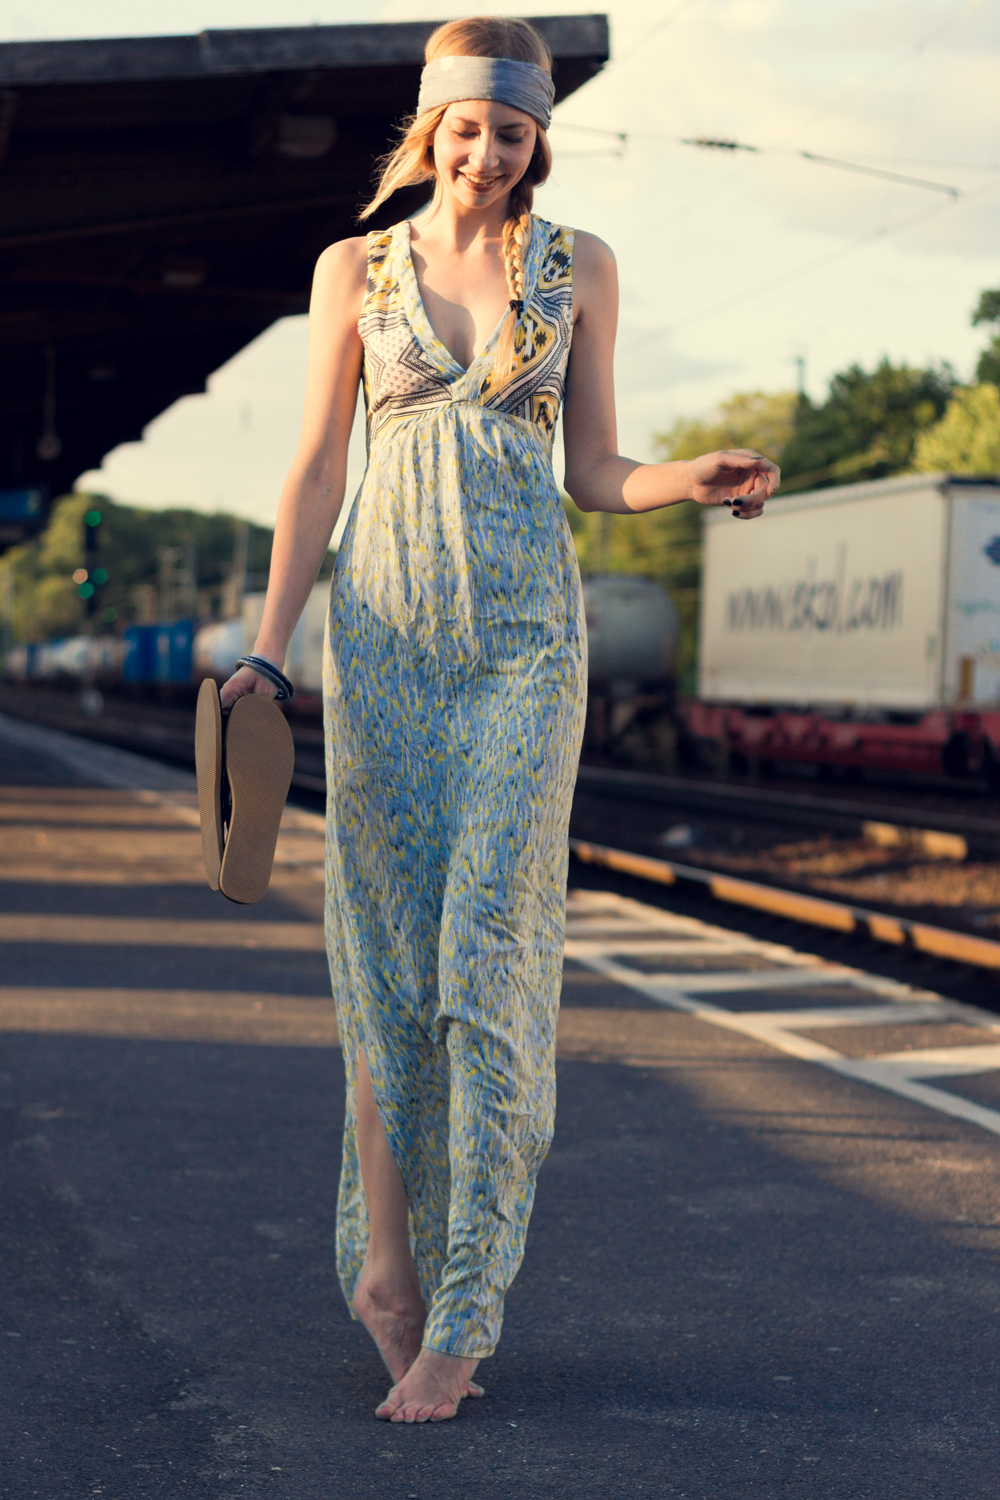 Hippie Chic Maxi Dresses Maxikleid, Flip Flops & Stirnband // maxi dress, flip flops & headband